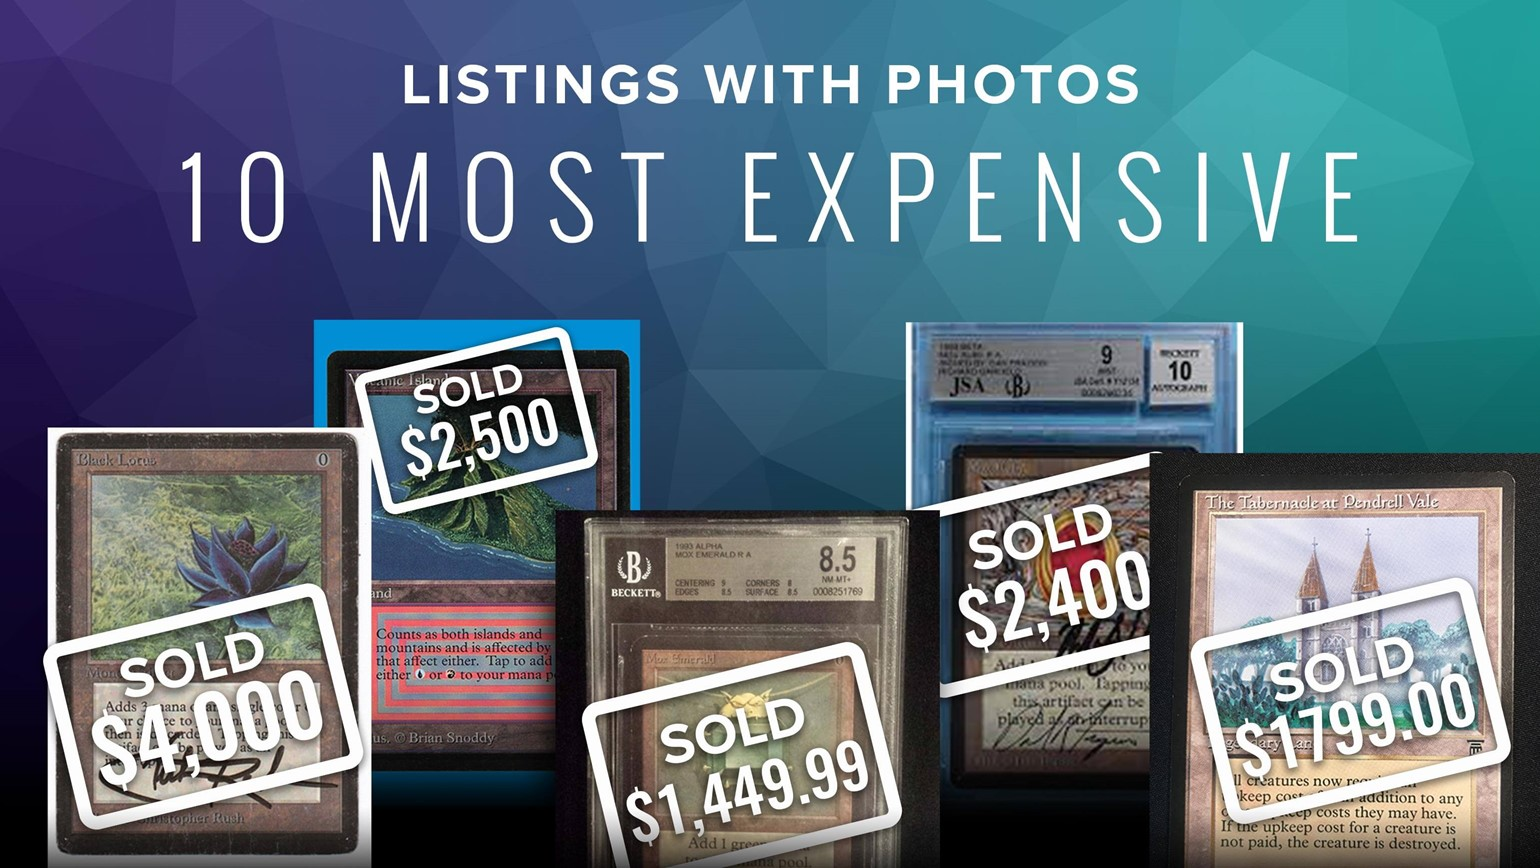 Top 10 Most Expensive Listings with Photos Sold So Far